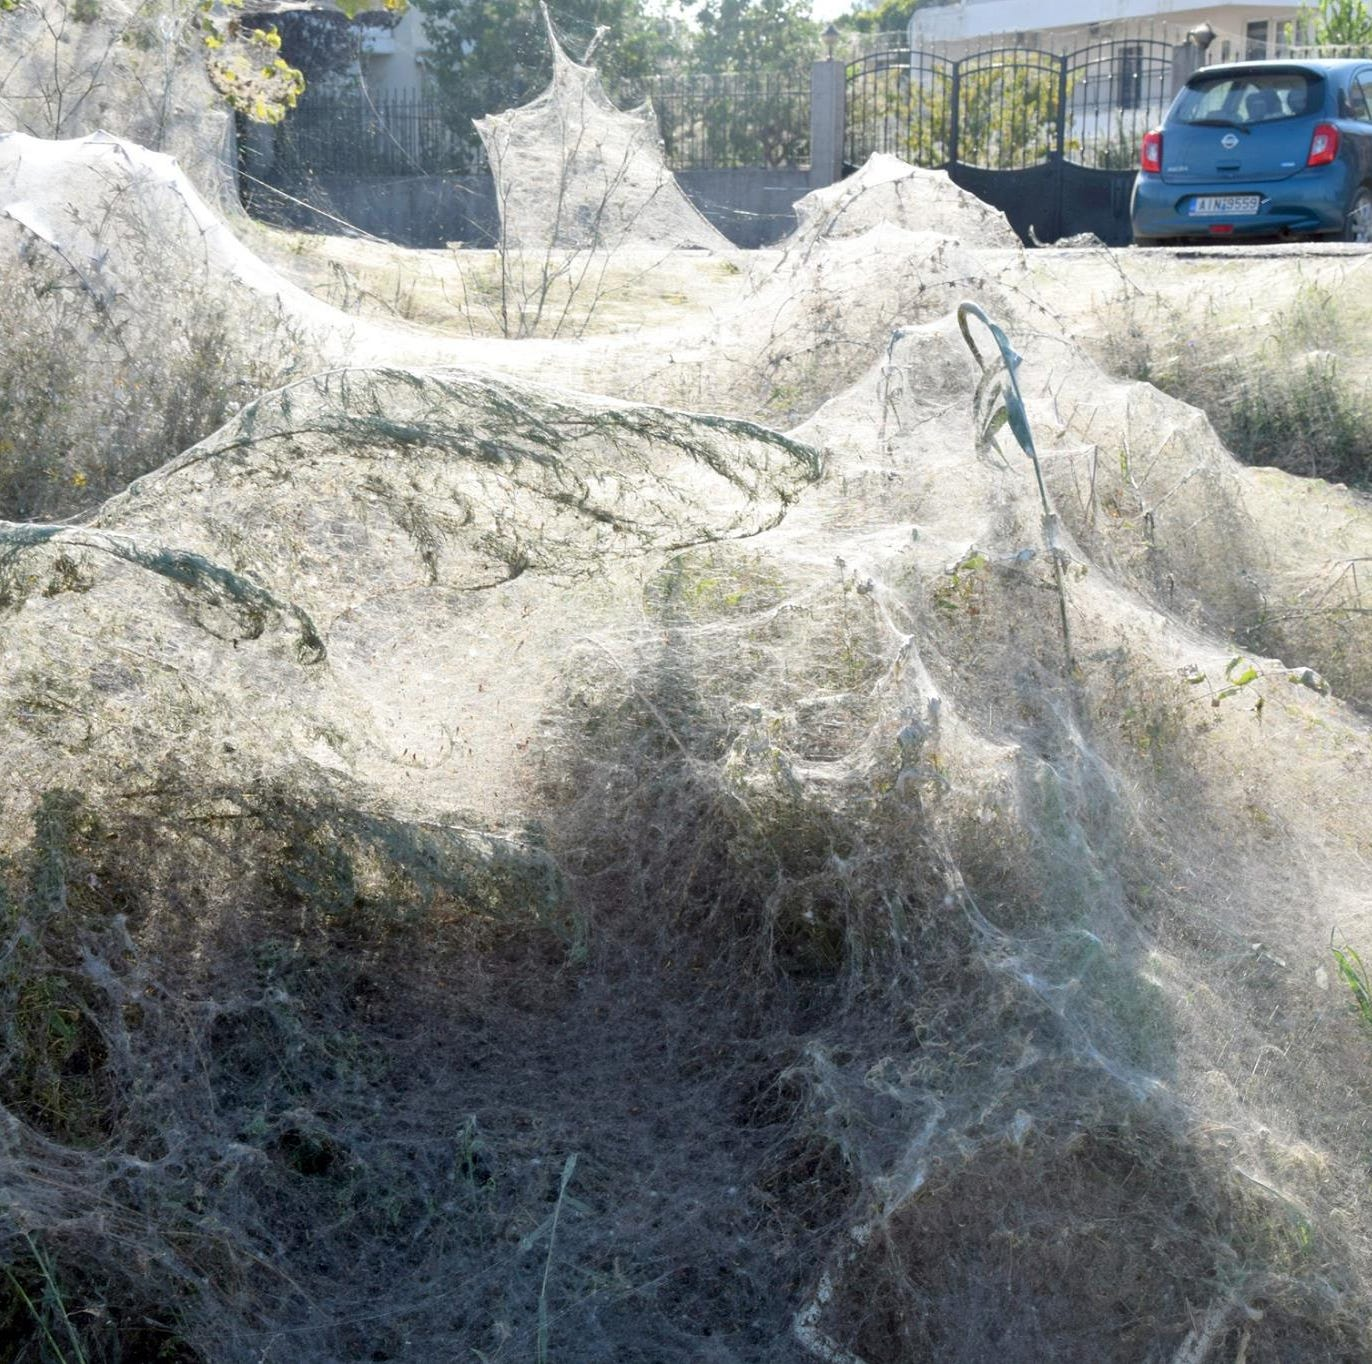 Massive spiderweb blankets Greek beach for spider sex 'party'